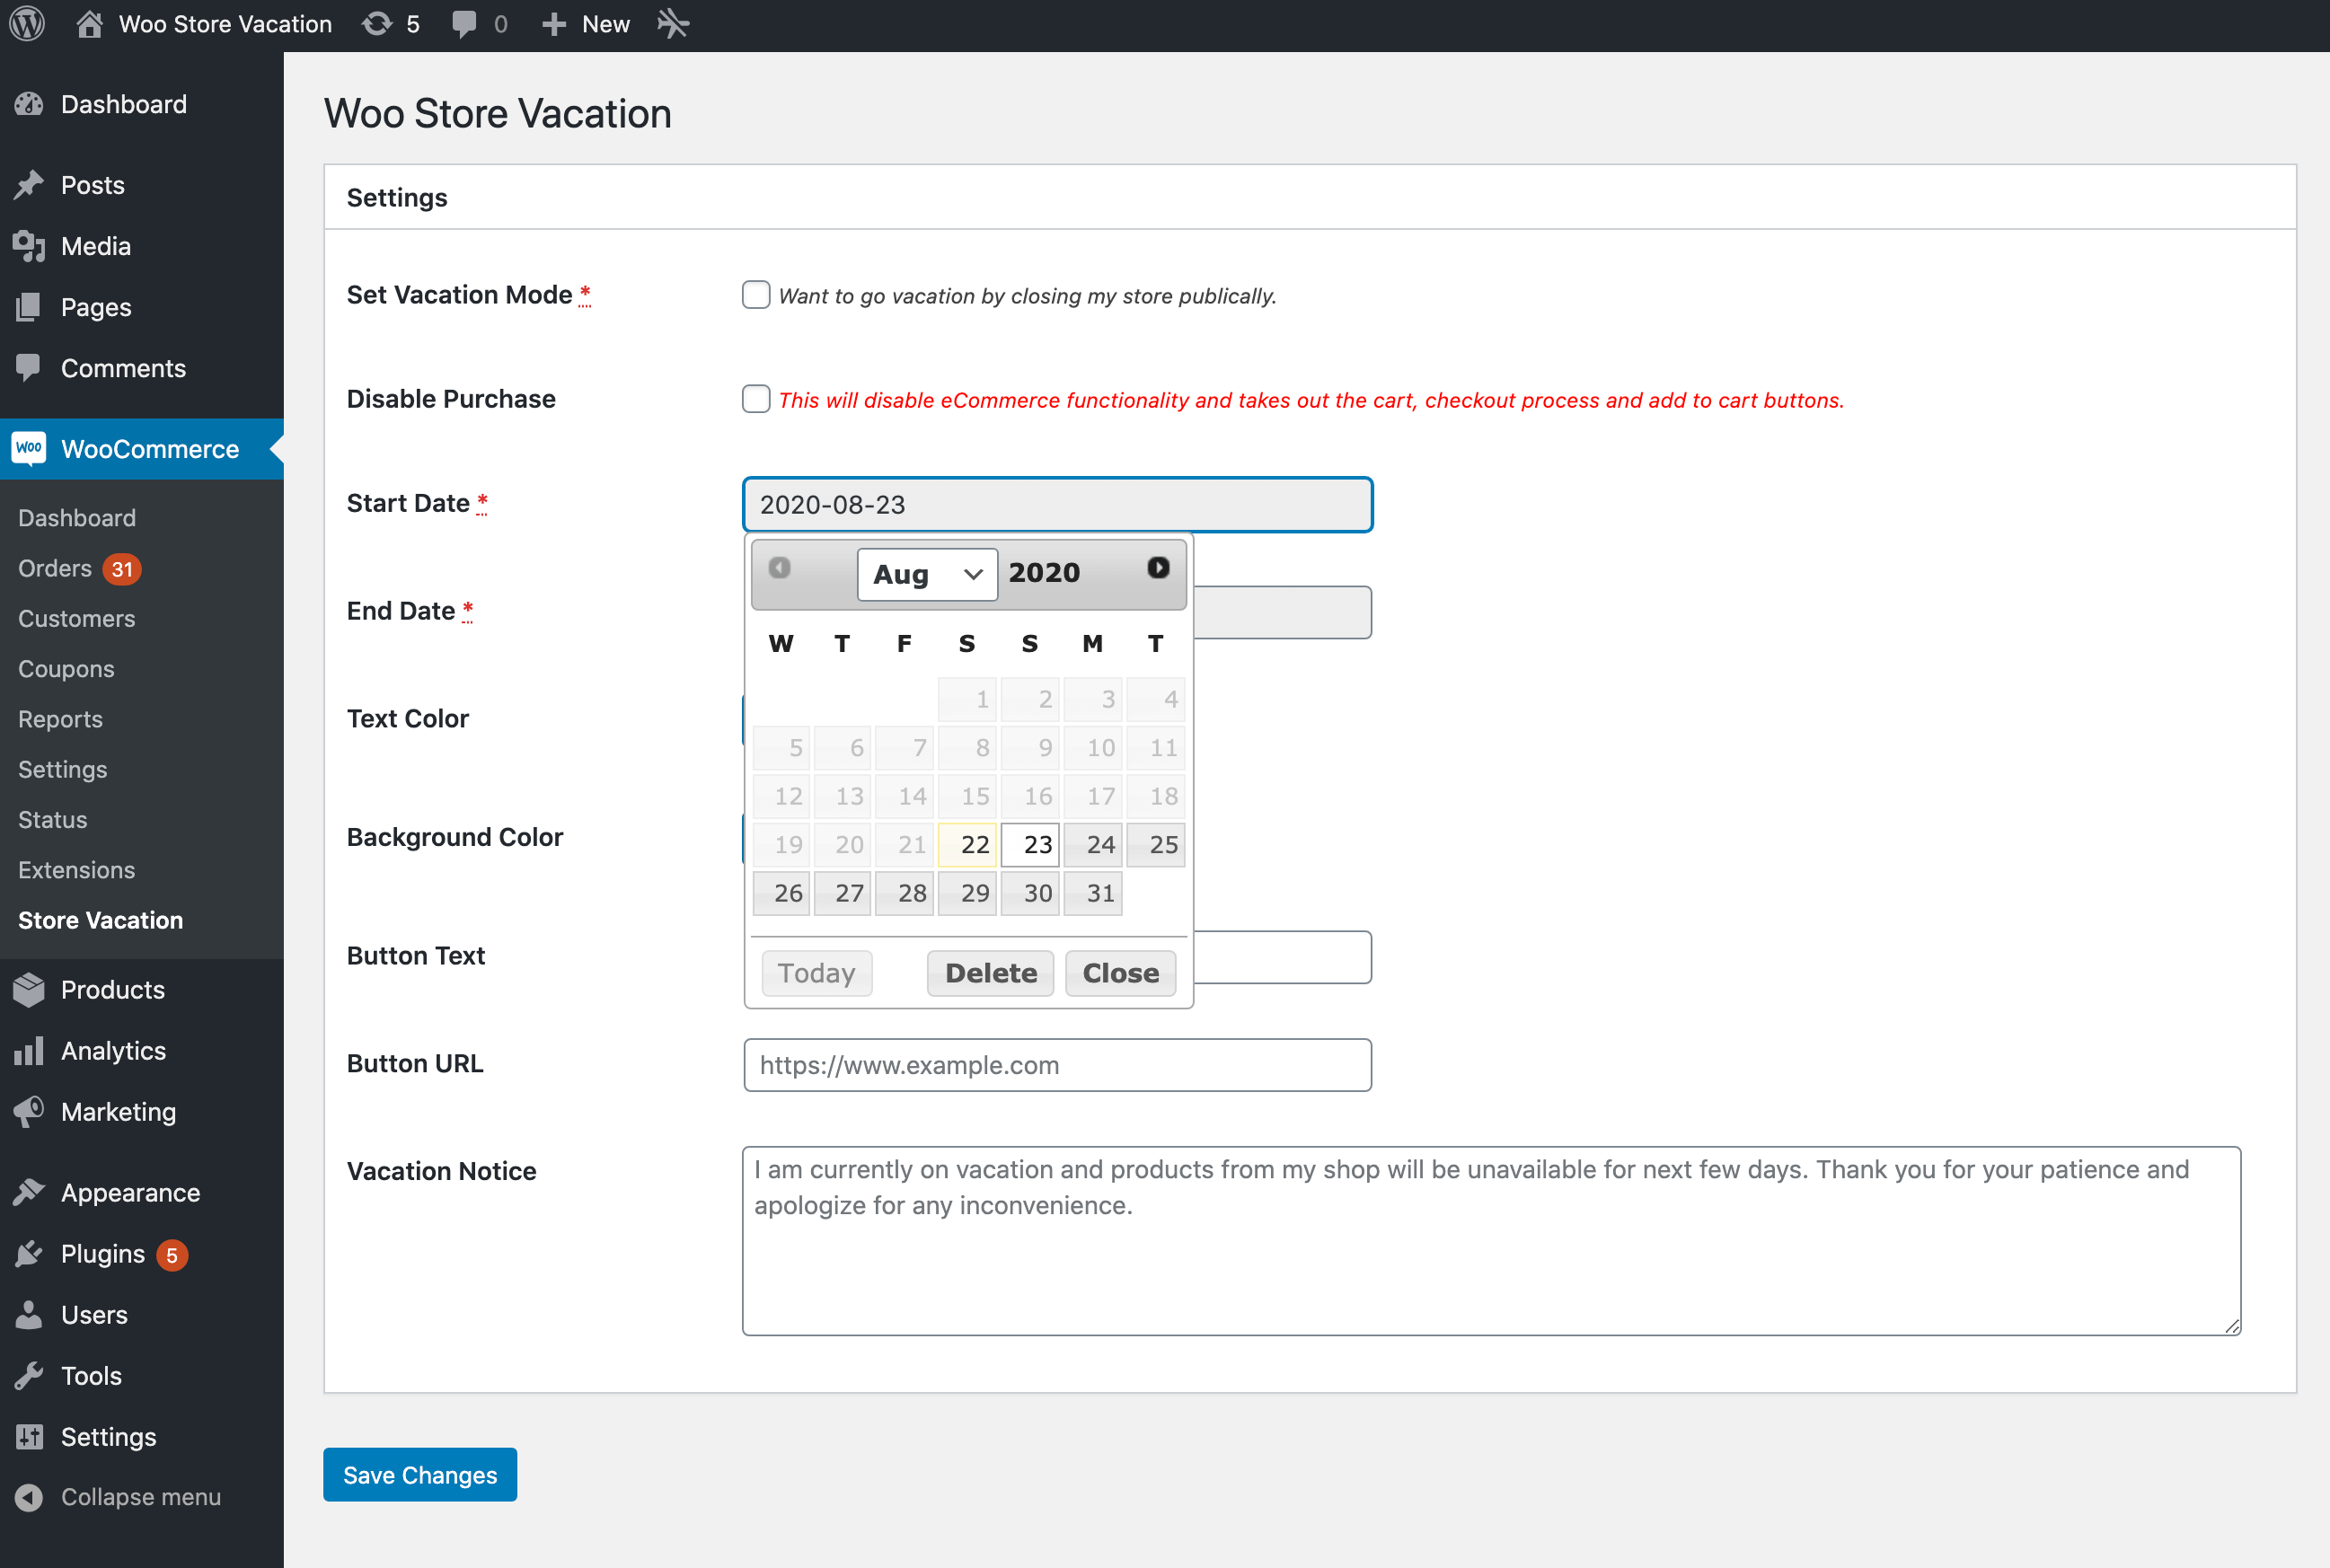 User Friendly Datepicker